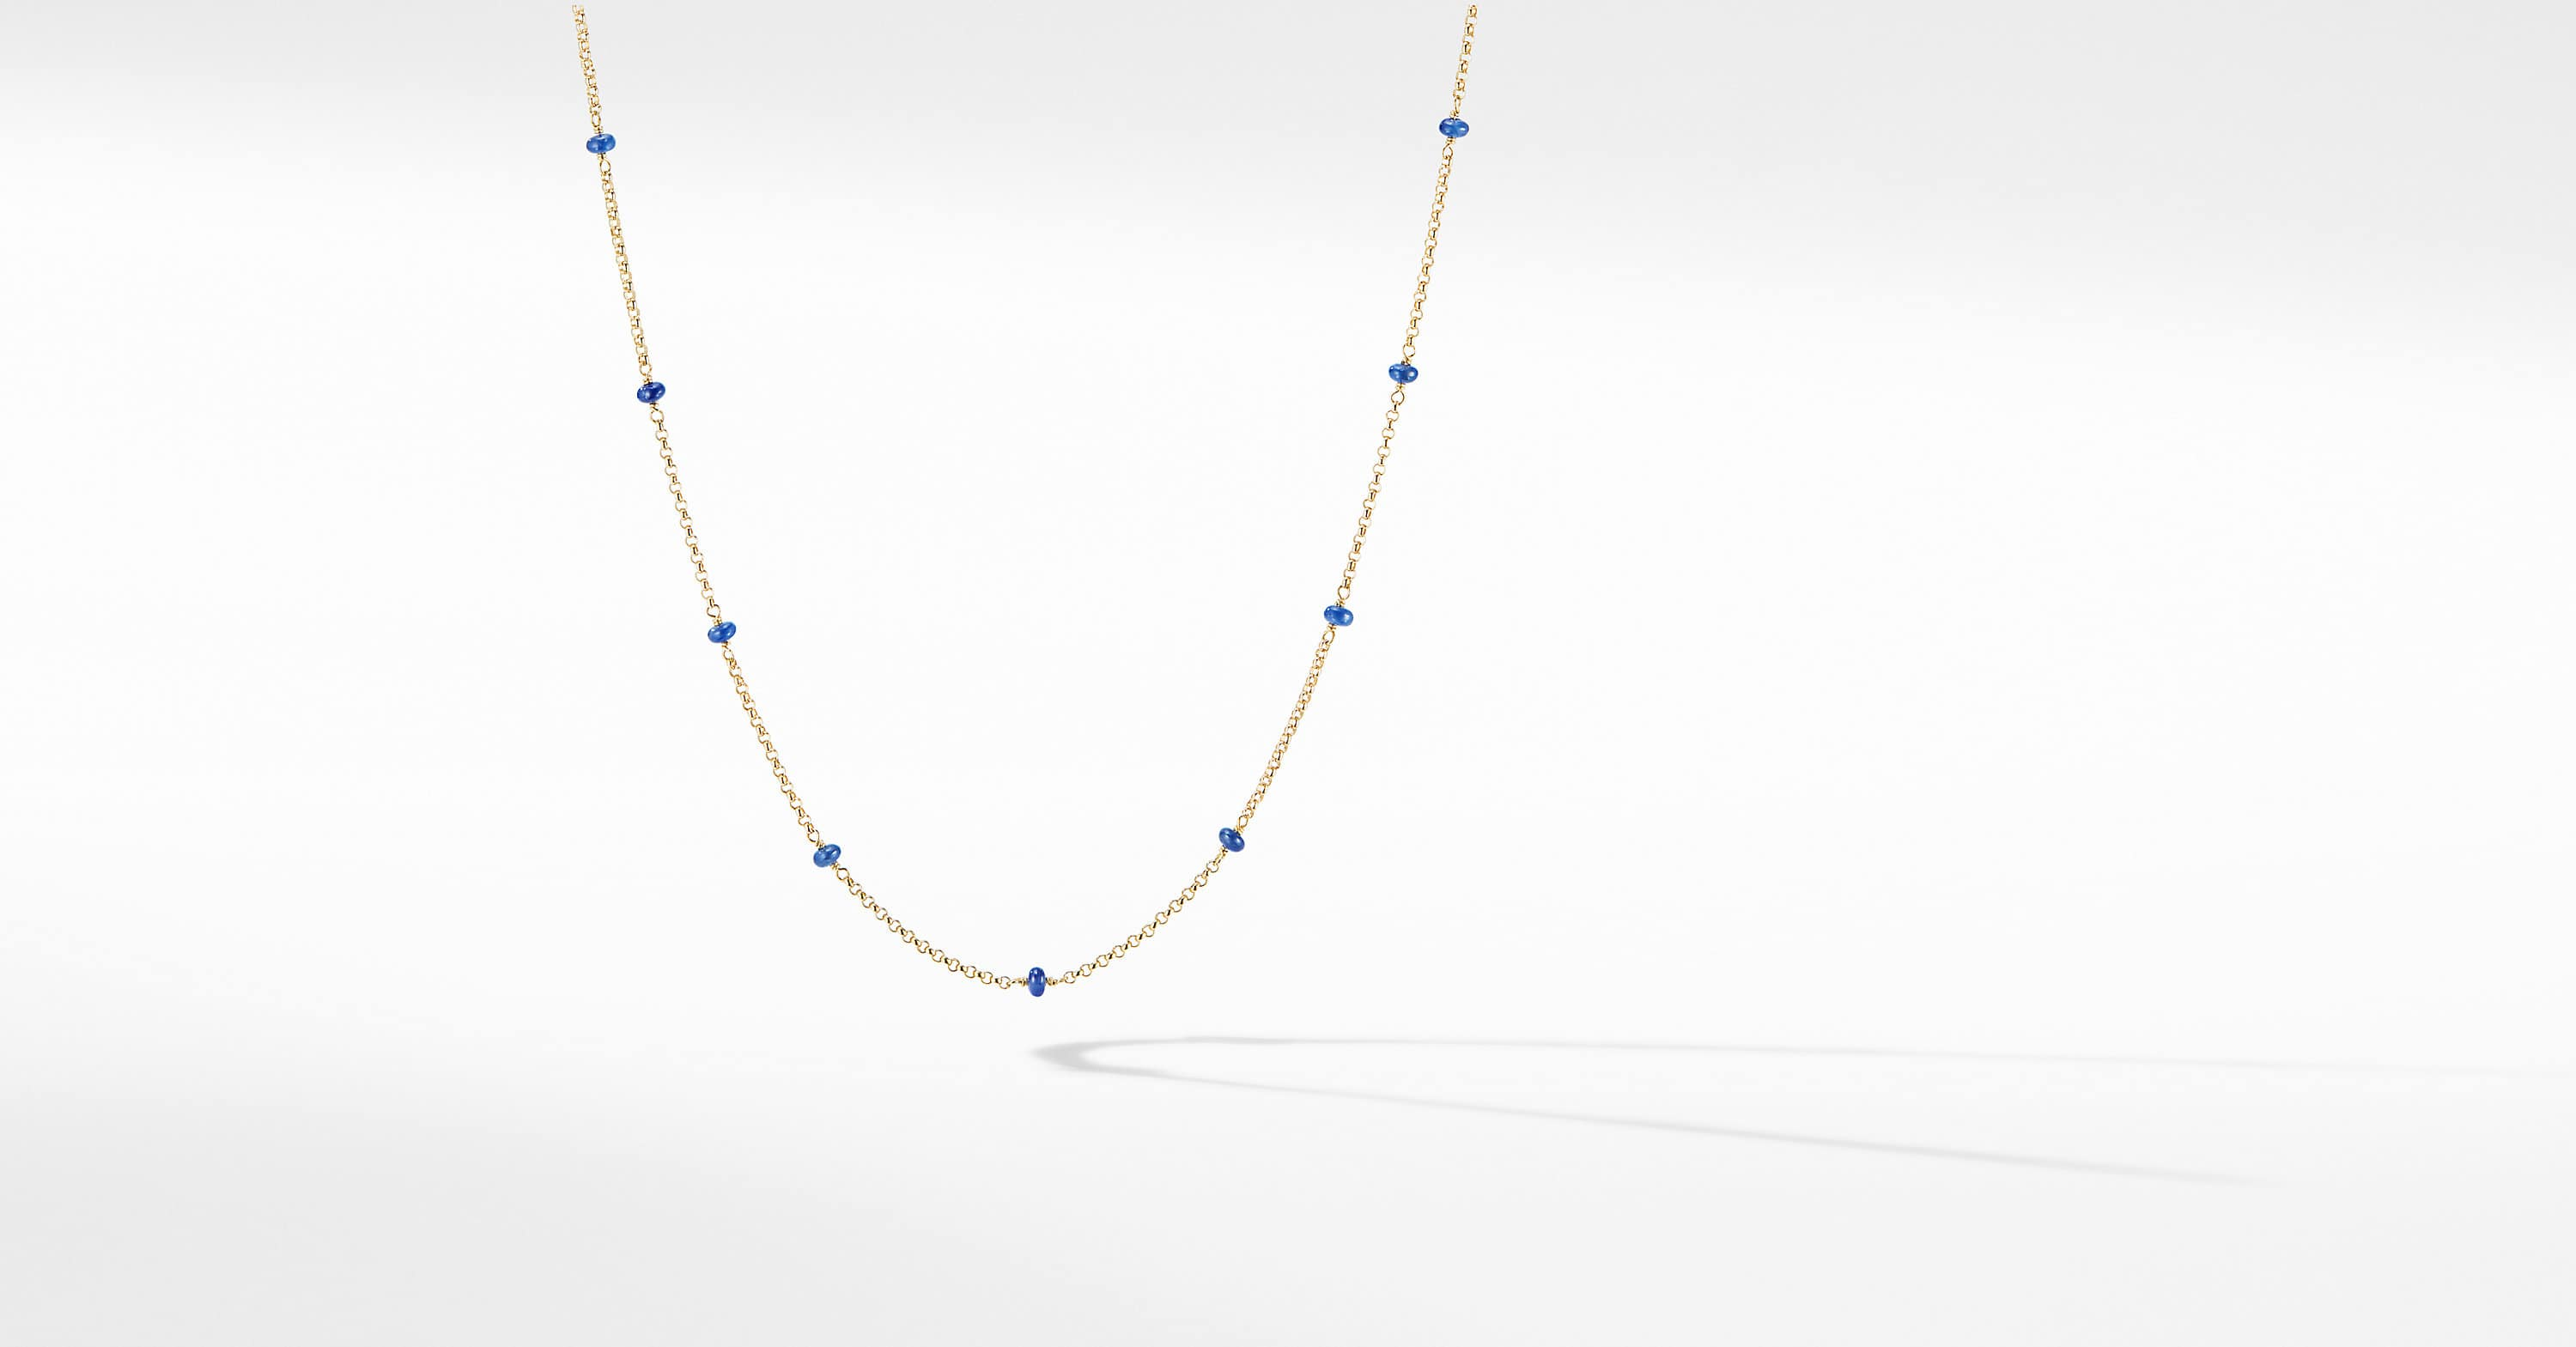 Cable Collectibles Bead and Chain Necklace in 18K Yellow Gold